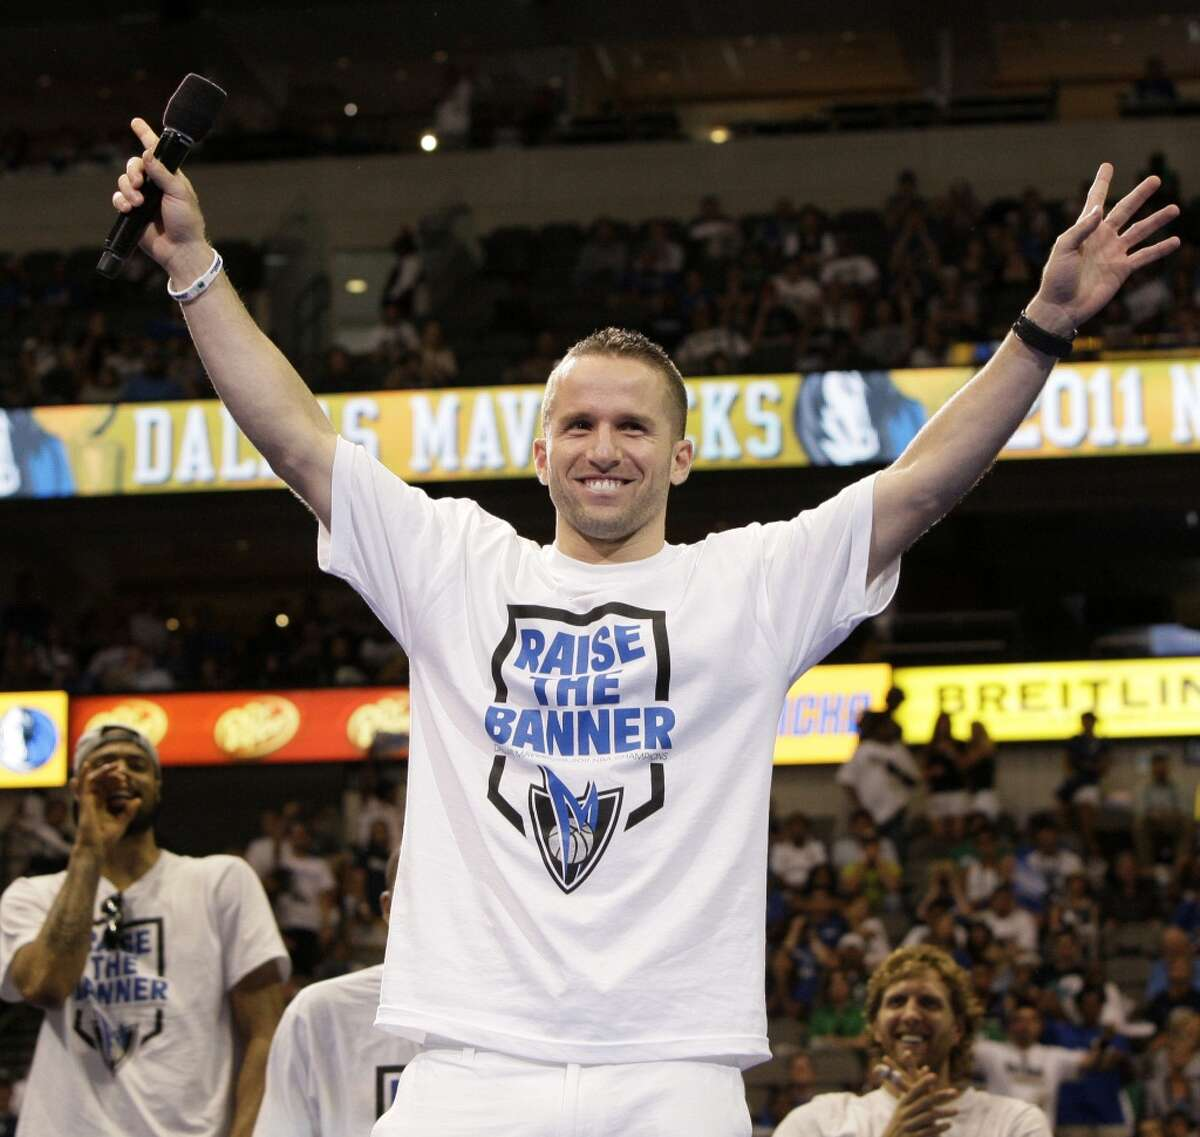 Dallas Mavericks' Jose Juan Barea of Puerto Rico, acknowledges cheers from fans during a rally at American Airlines Center following the team's NBA Championship victory parade Thursday, June 16, 2011, in Dallas.